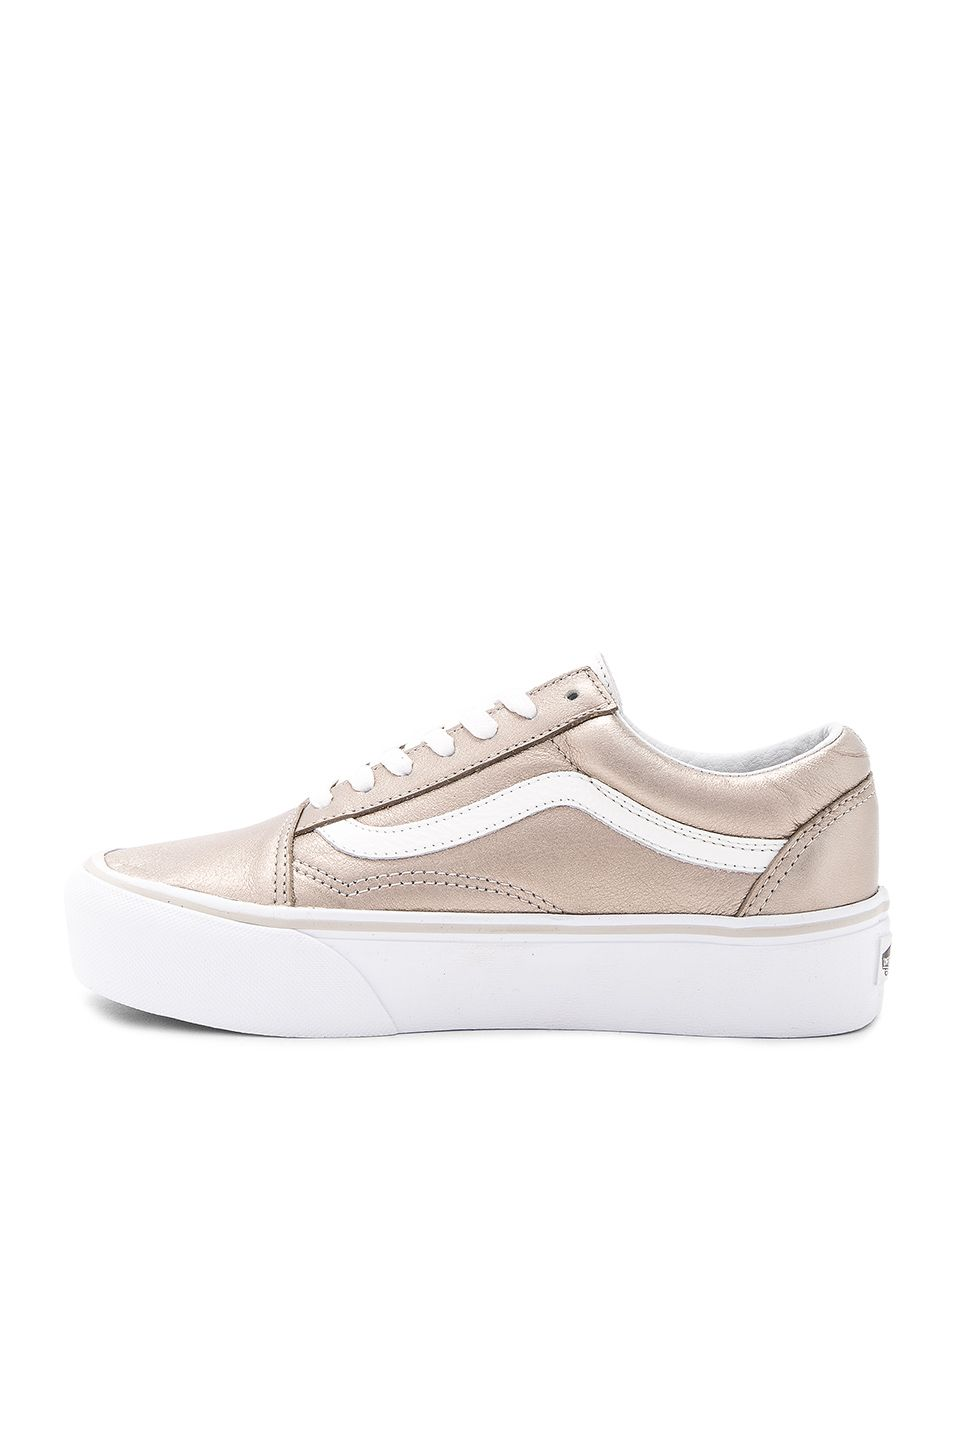 Vans Old Skool Platform Sneaker en Gray Gold & True White | REVOLVE